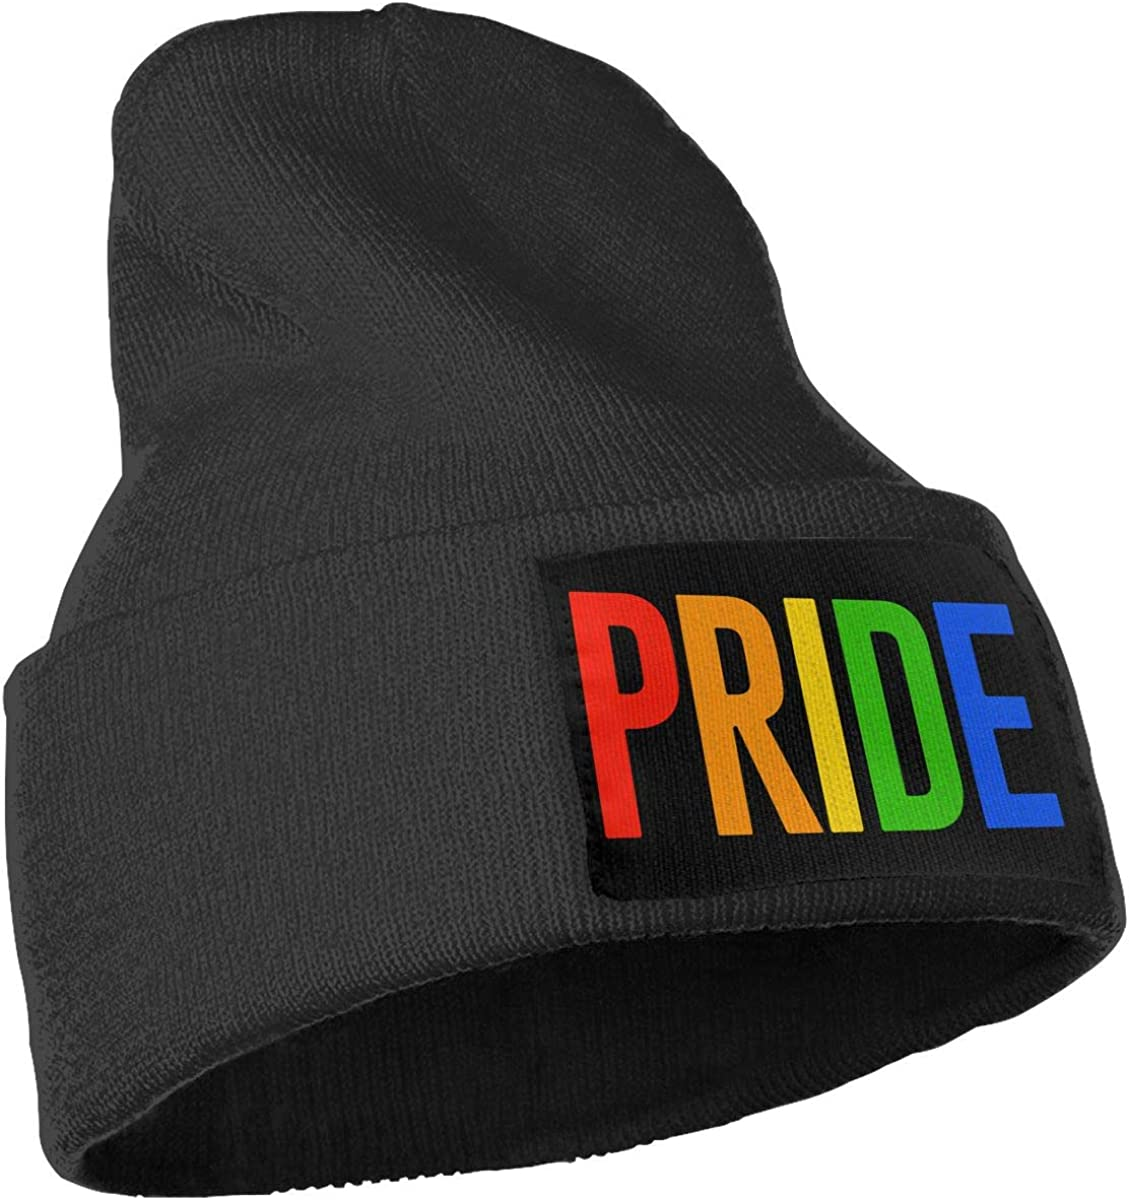 COLLJL-8 Unisex Gay Pride Outdoor Stretch Knit Beanies Hat Soft Winter Knit Caps